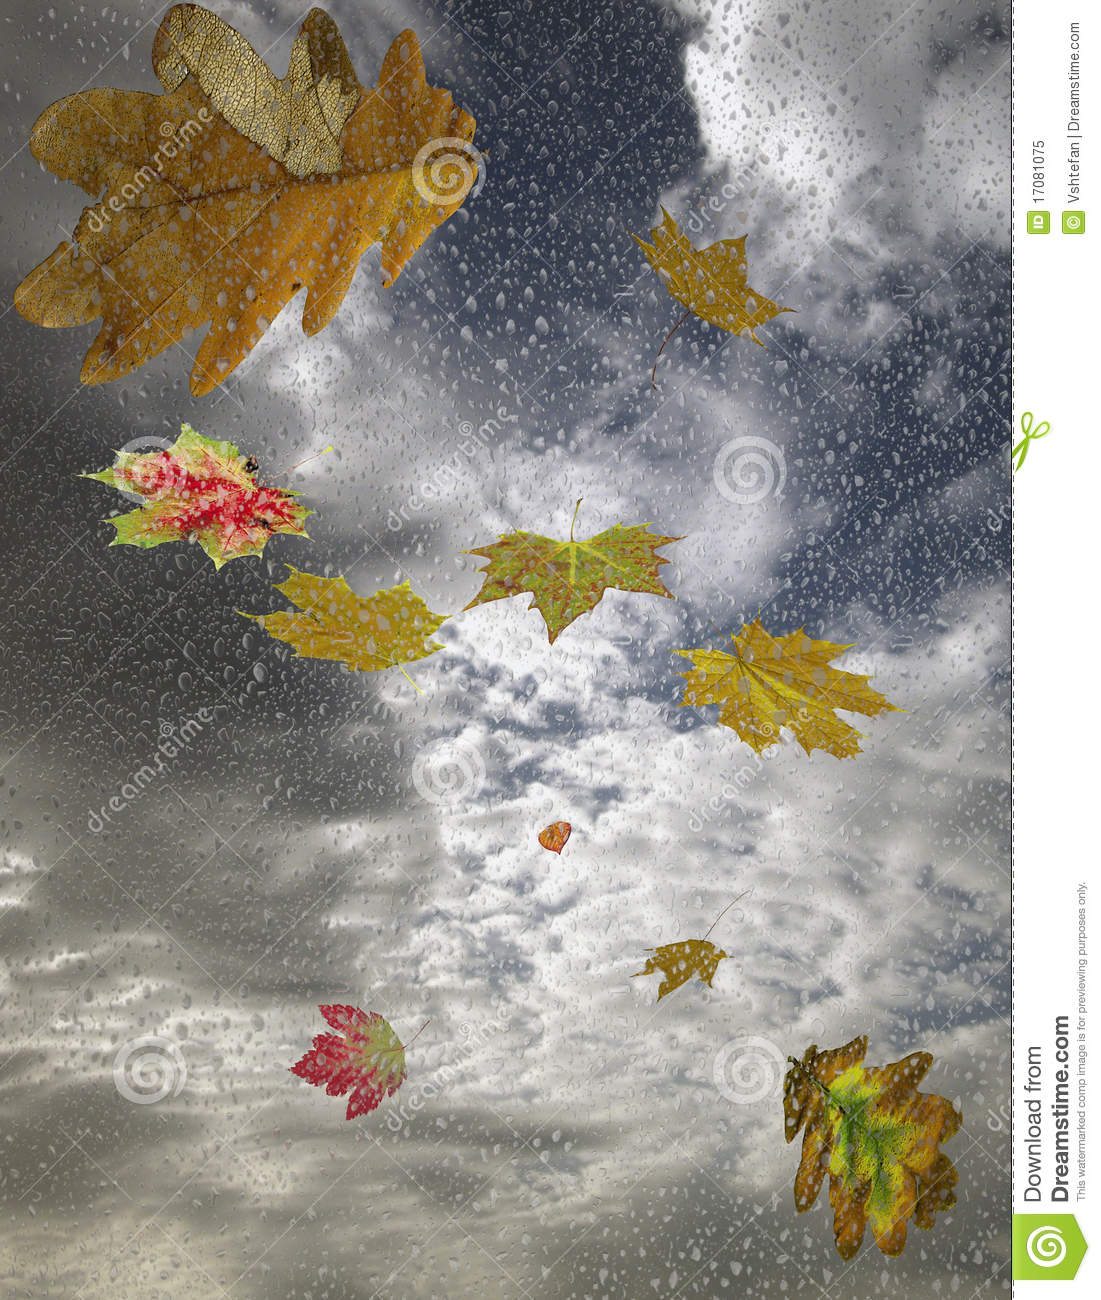 The Falling Autumn Leaves And Raindrops Royalty Free Stock ...